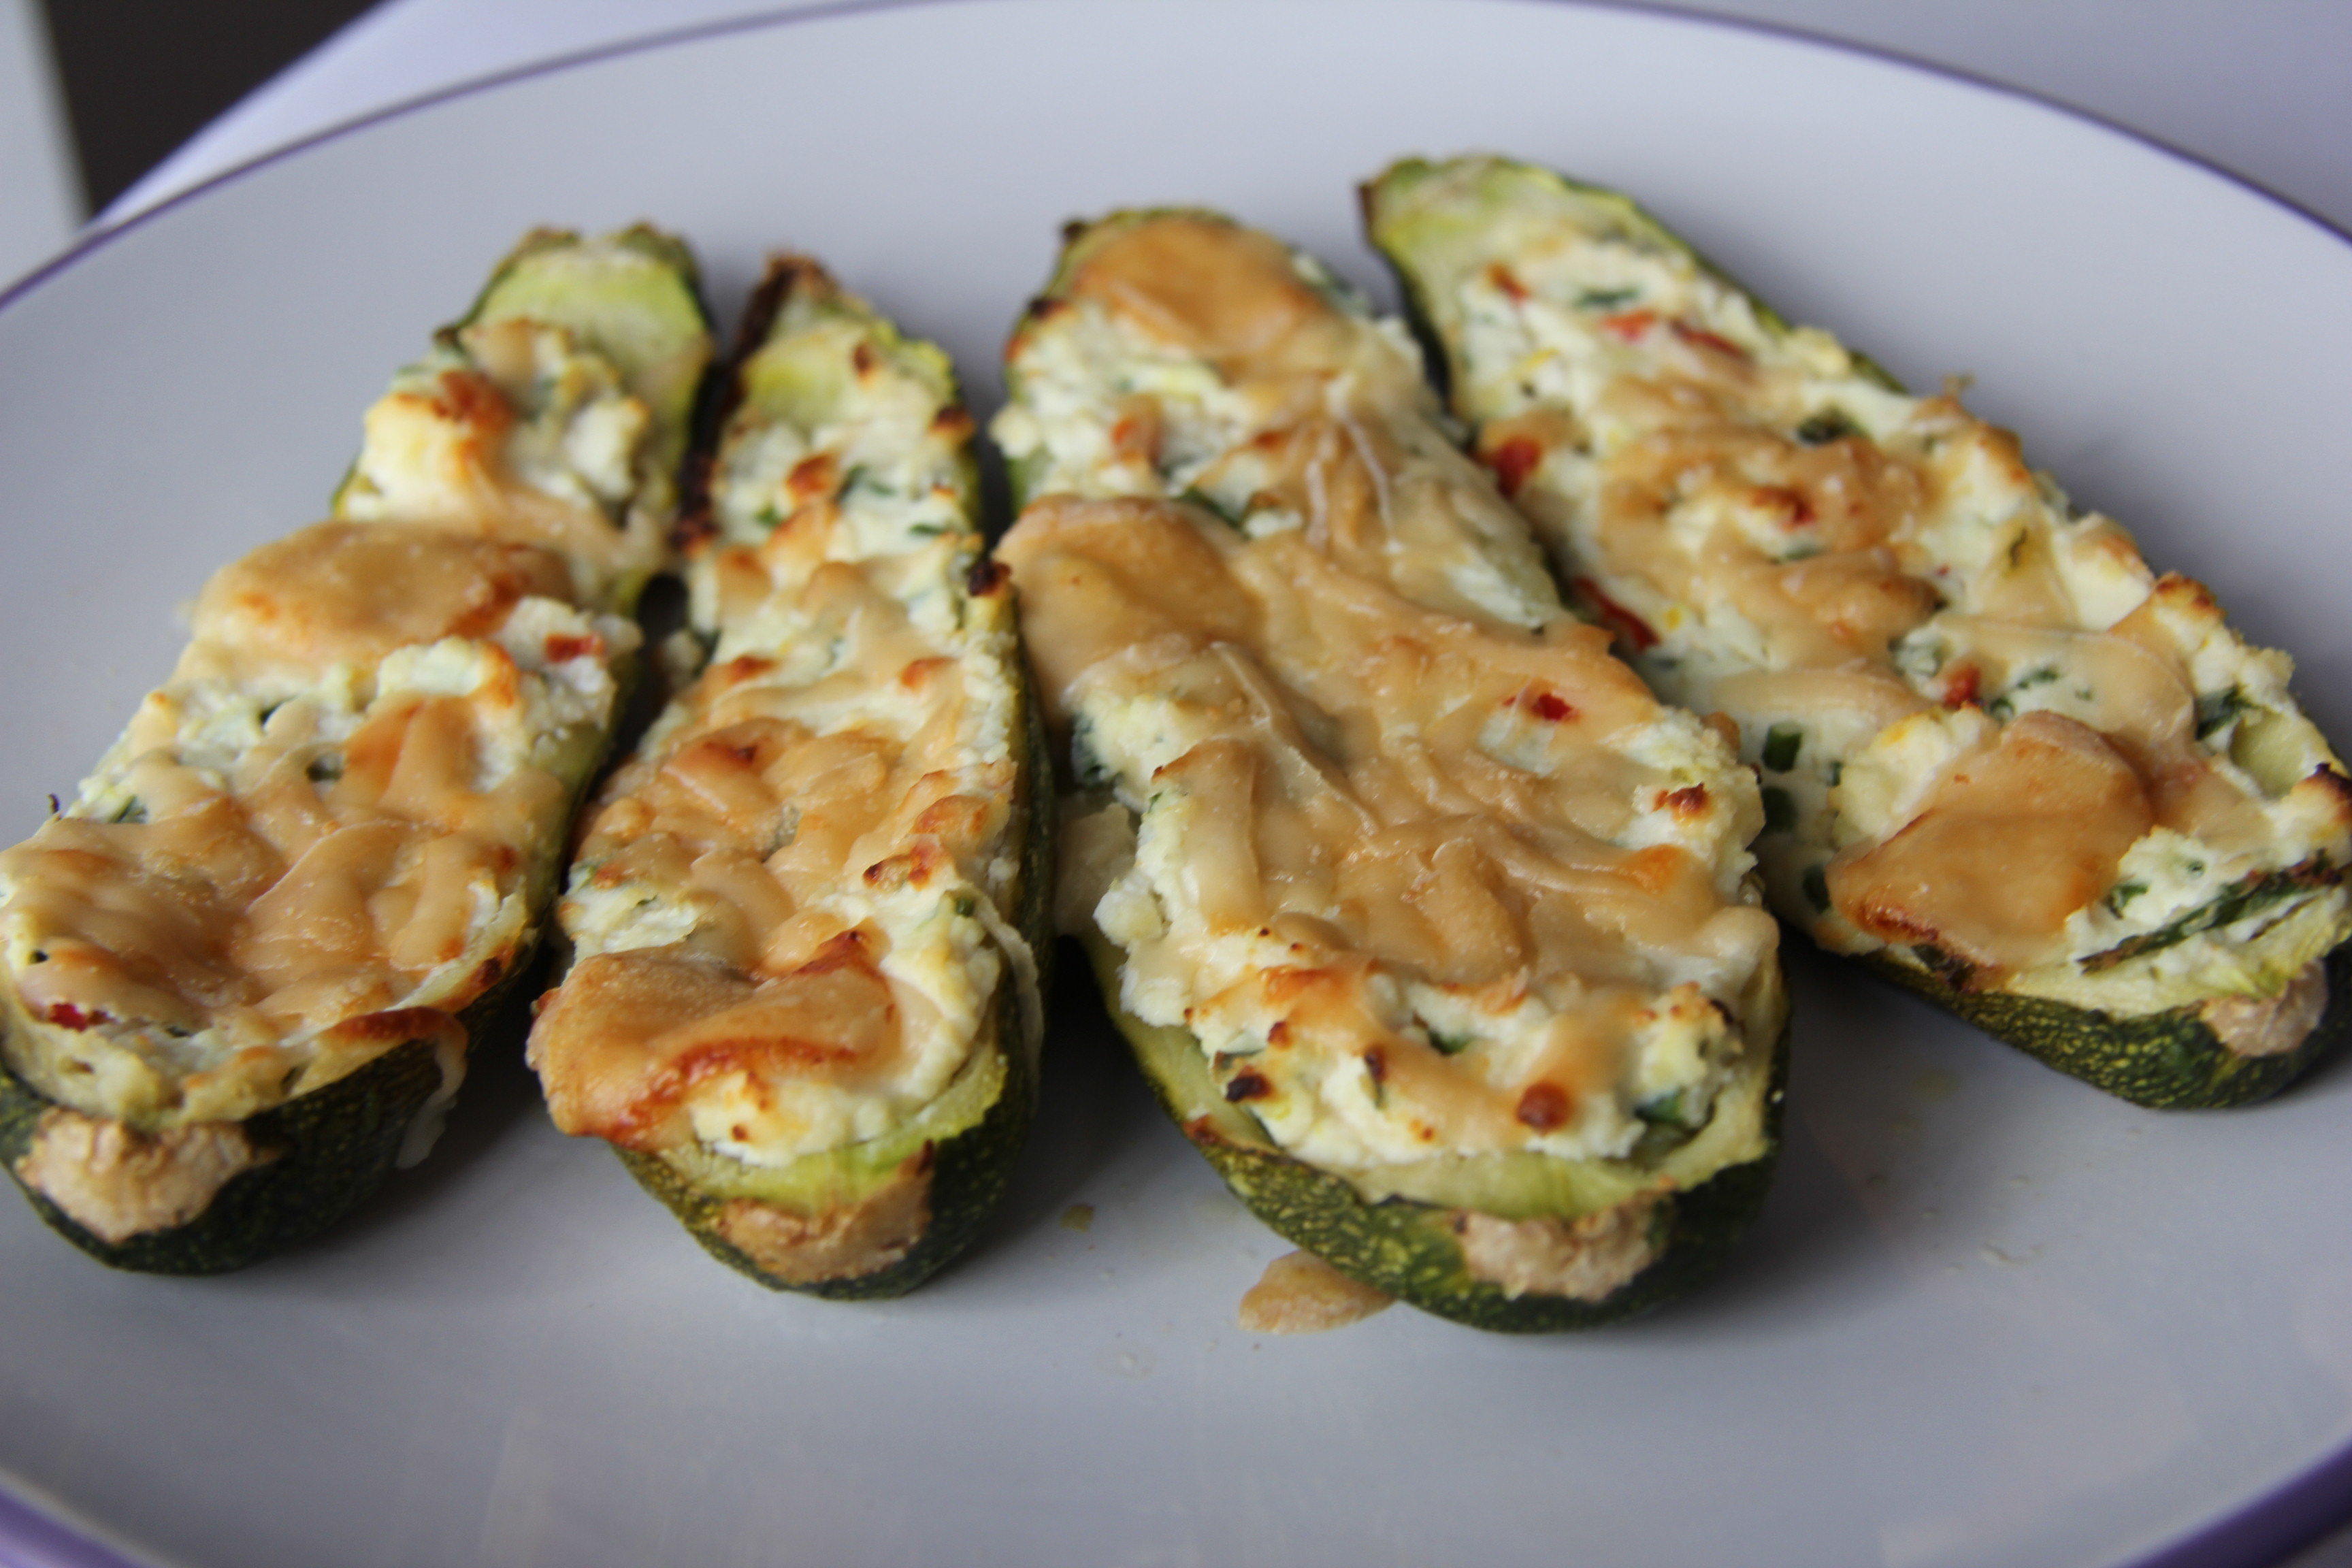 Baked Ricotta Stuffed Courgettes (Zucchini) | Divalicious Recipes